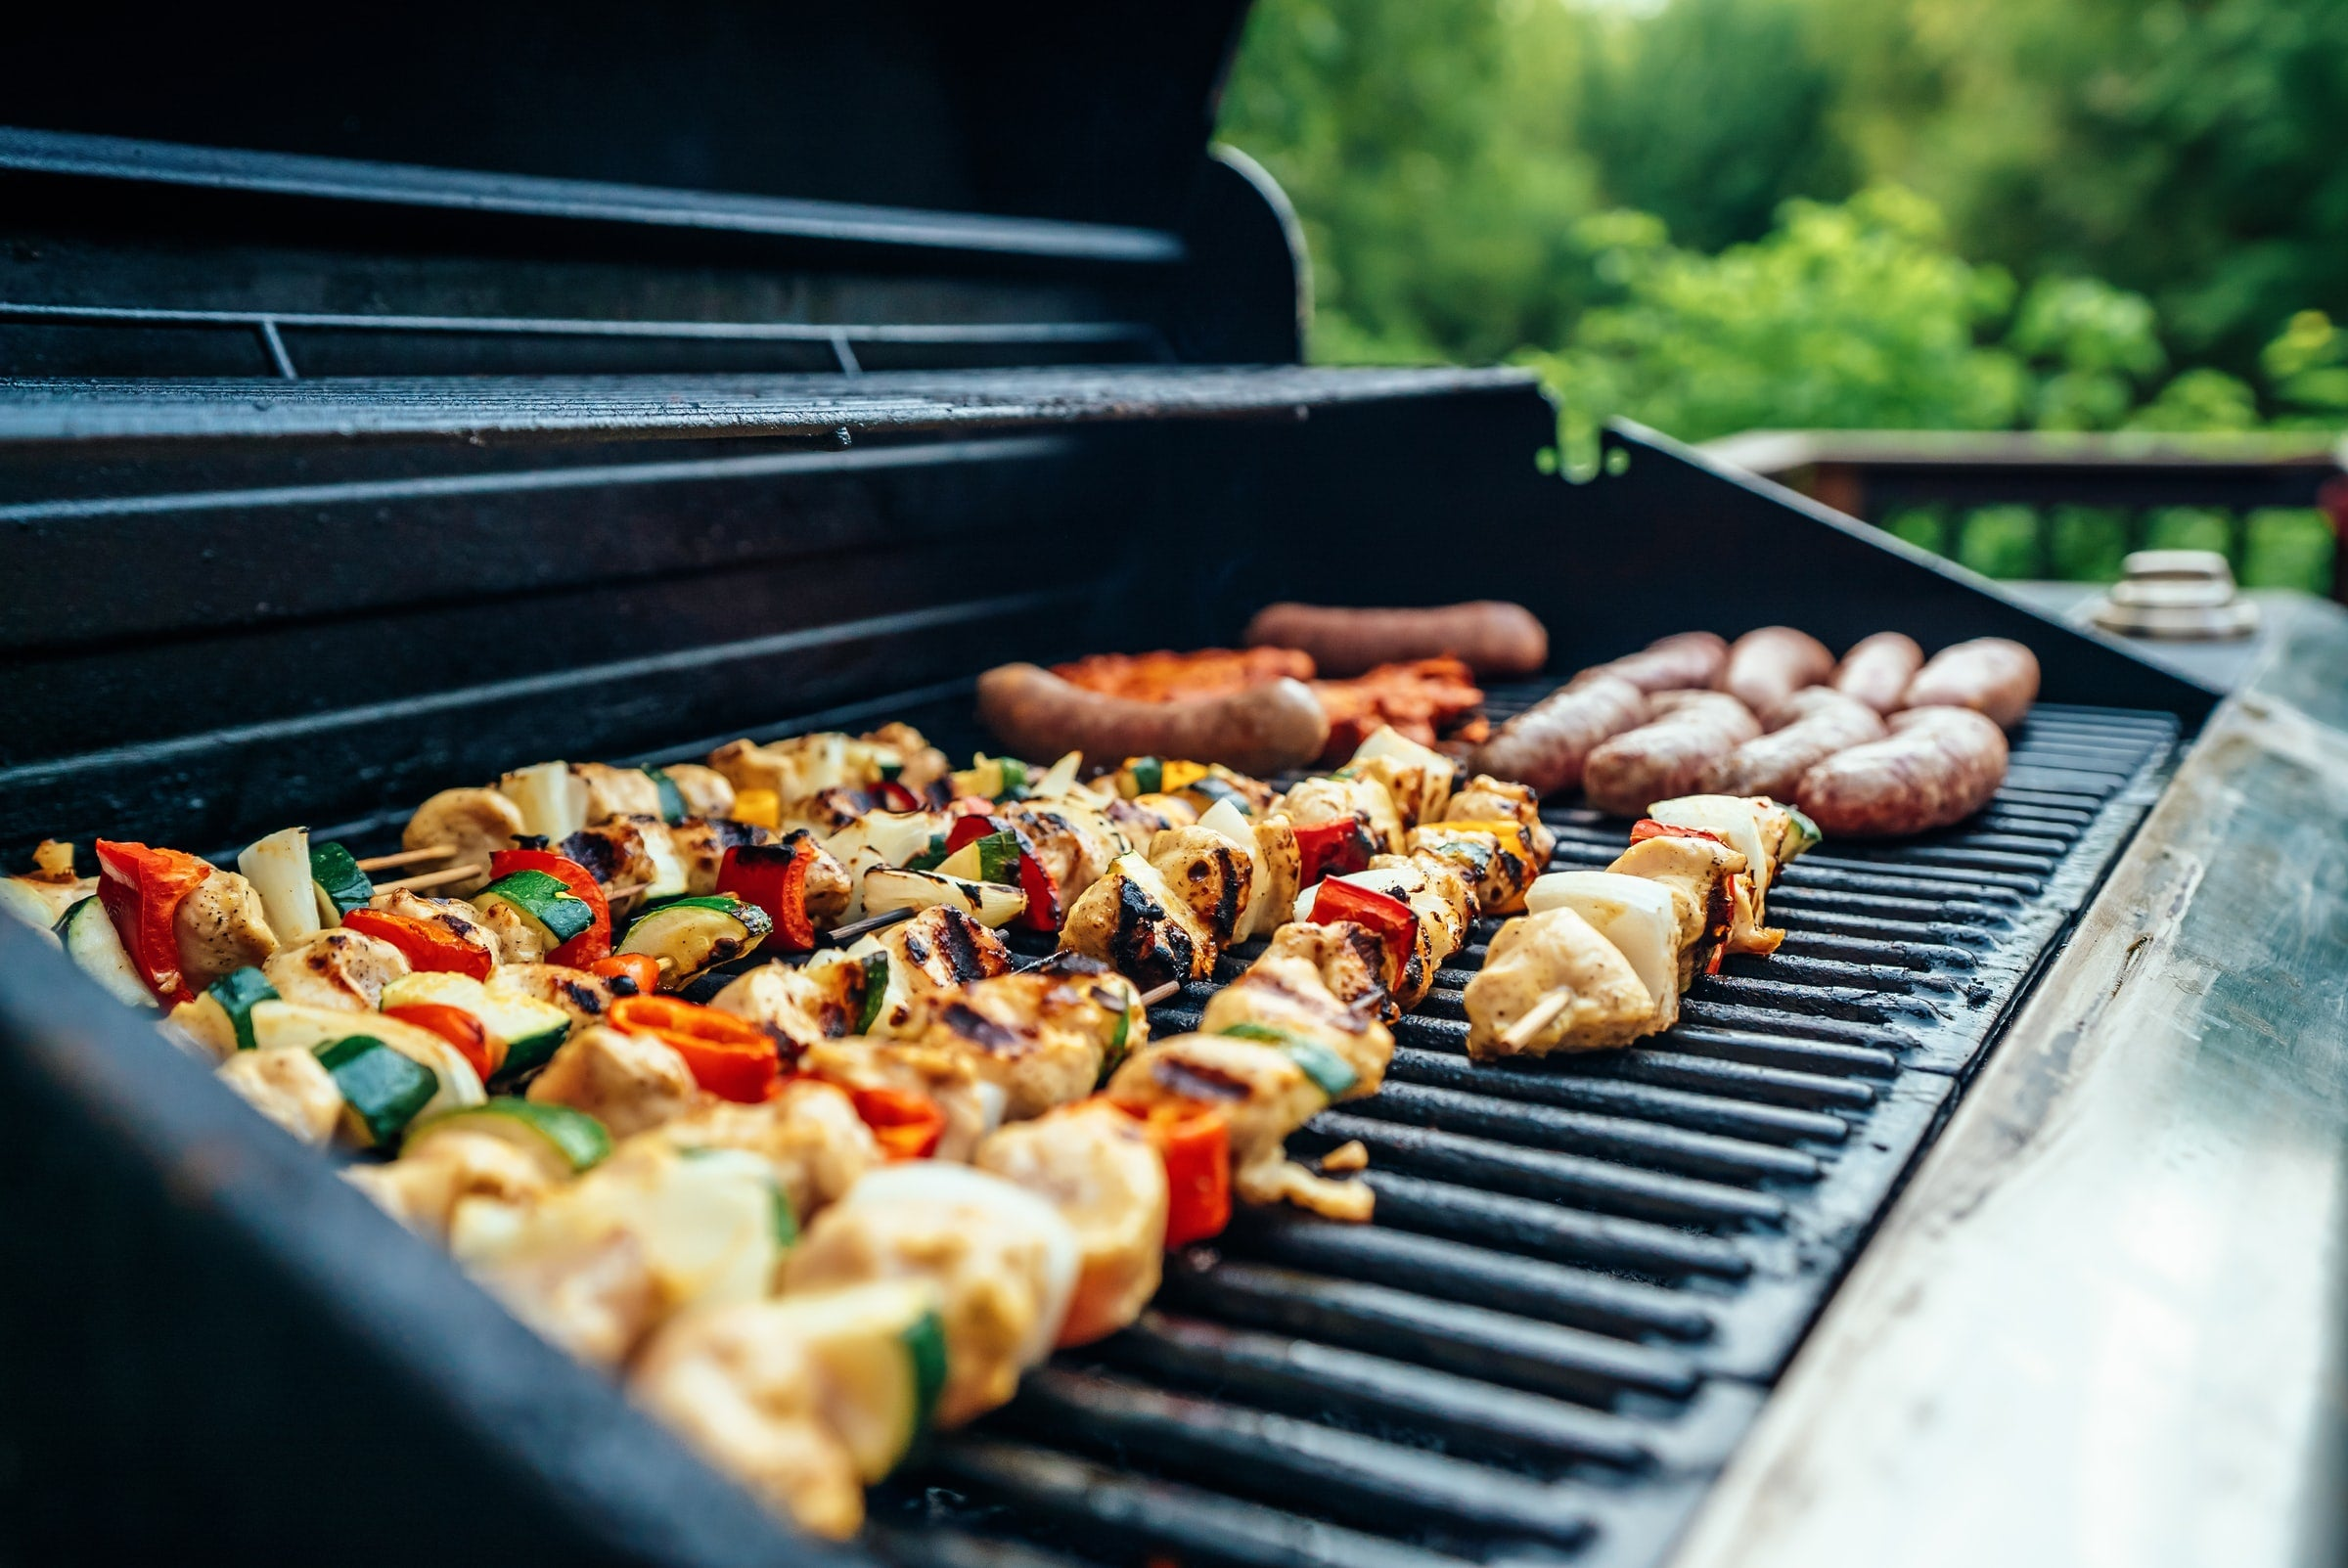 Chicken kebabs and sausages sizzling on a BBQ grill